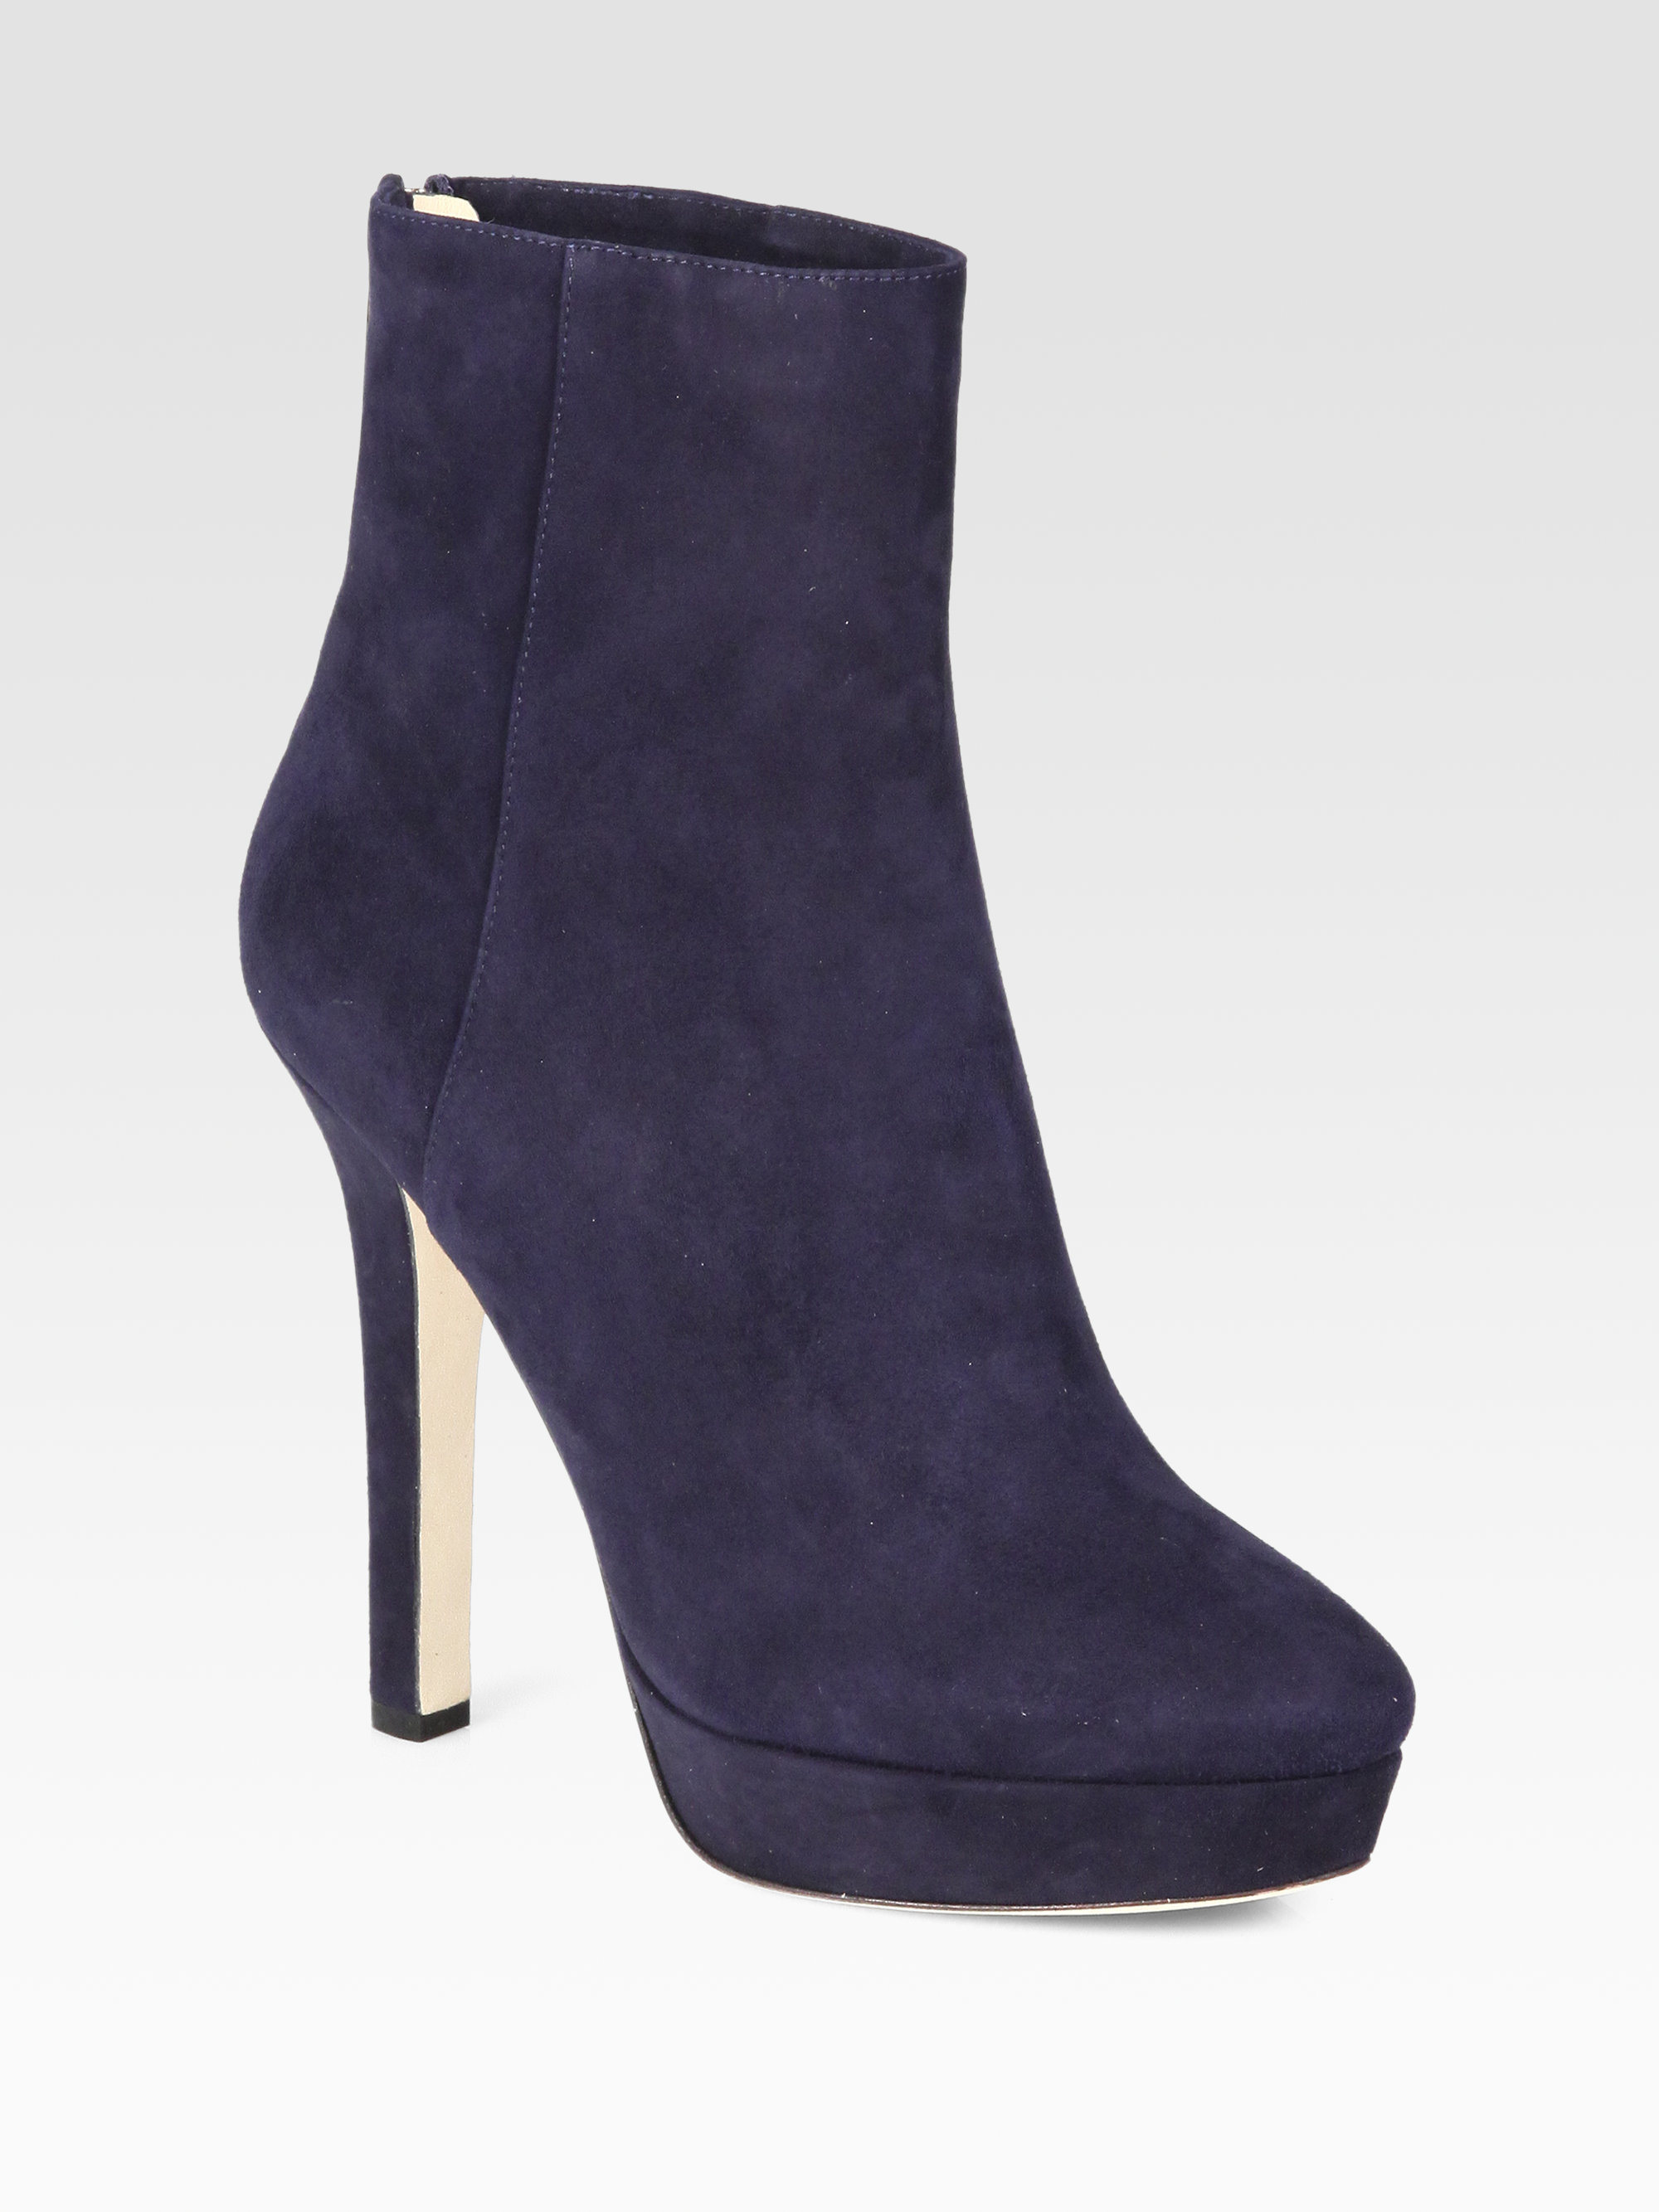 Jimmy Choo Platform Suede Booties buy cheap for sale collections for sale 2014 new cheap online cheap sale pay with visa Q4WZmsG